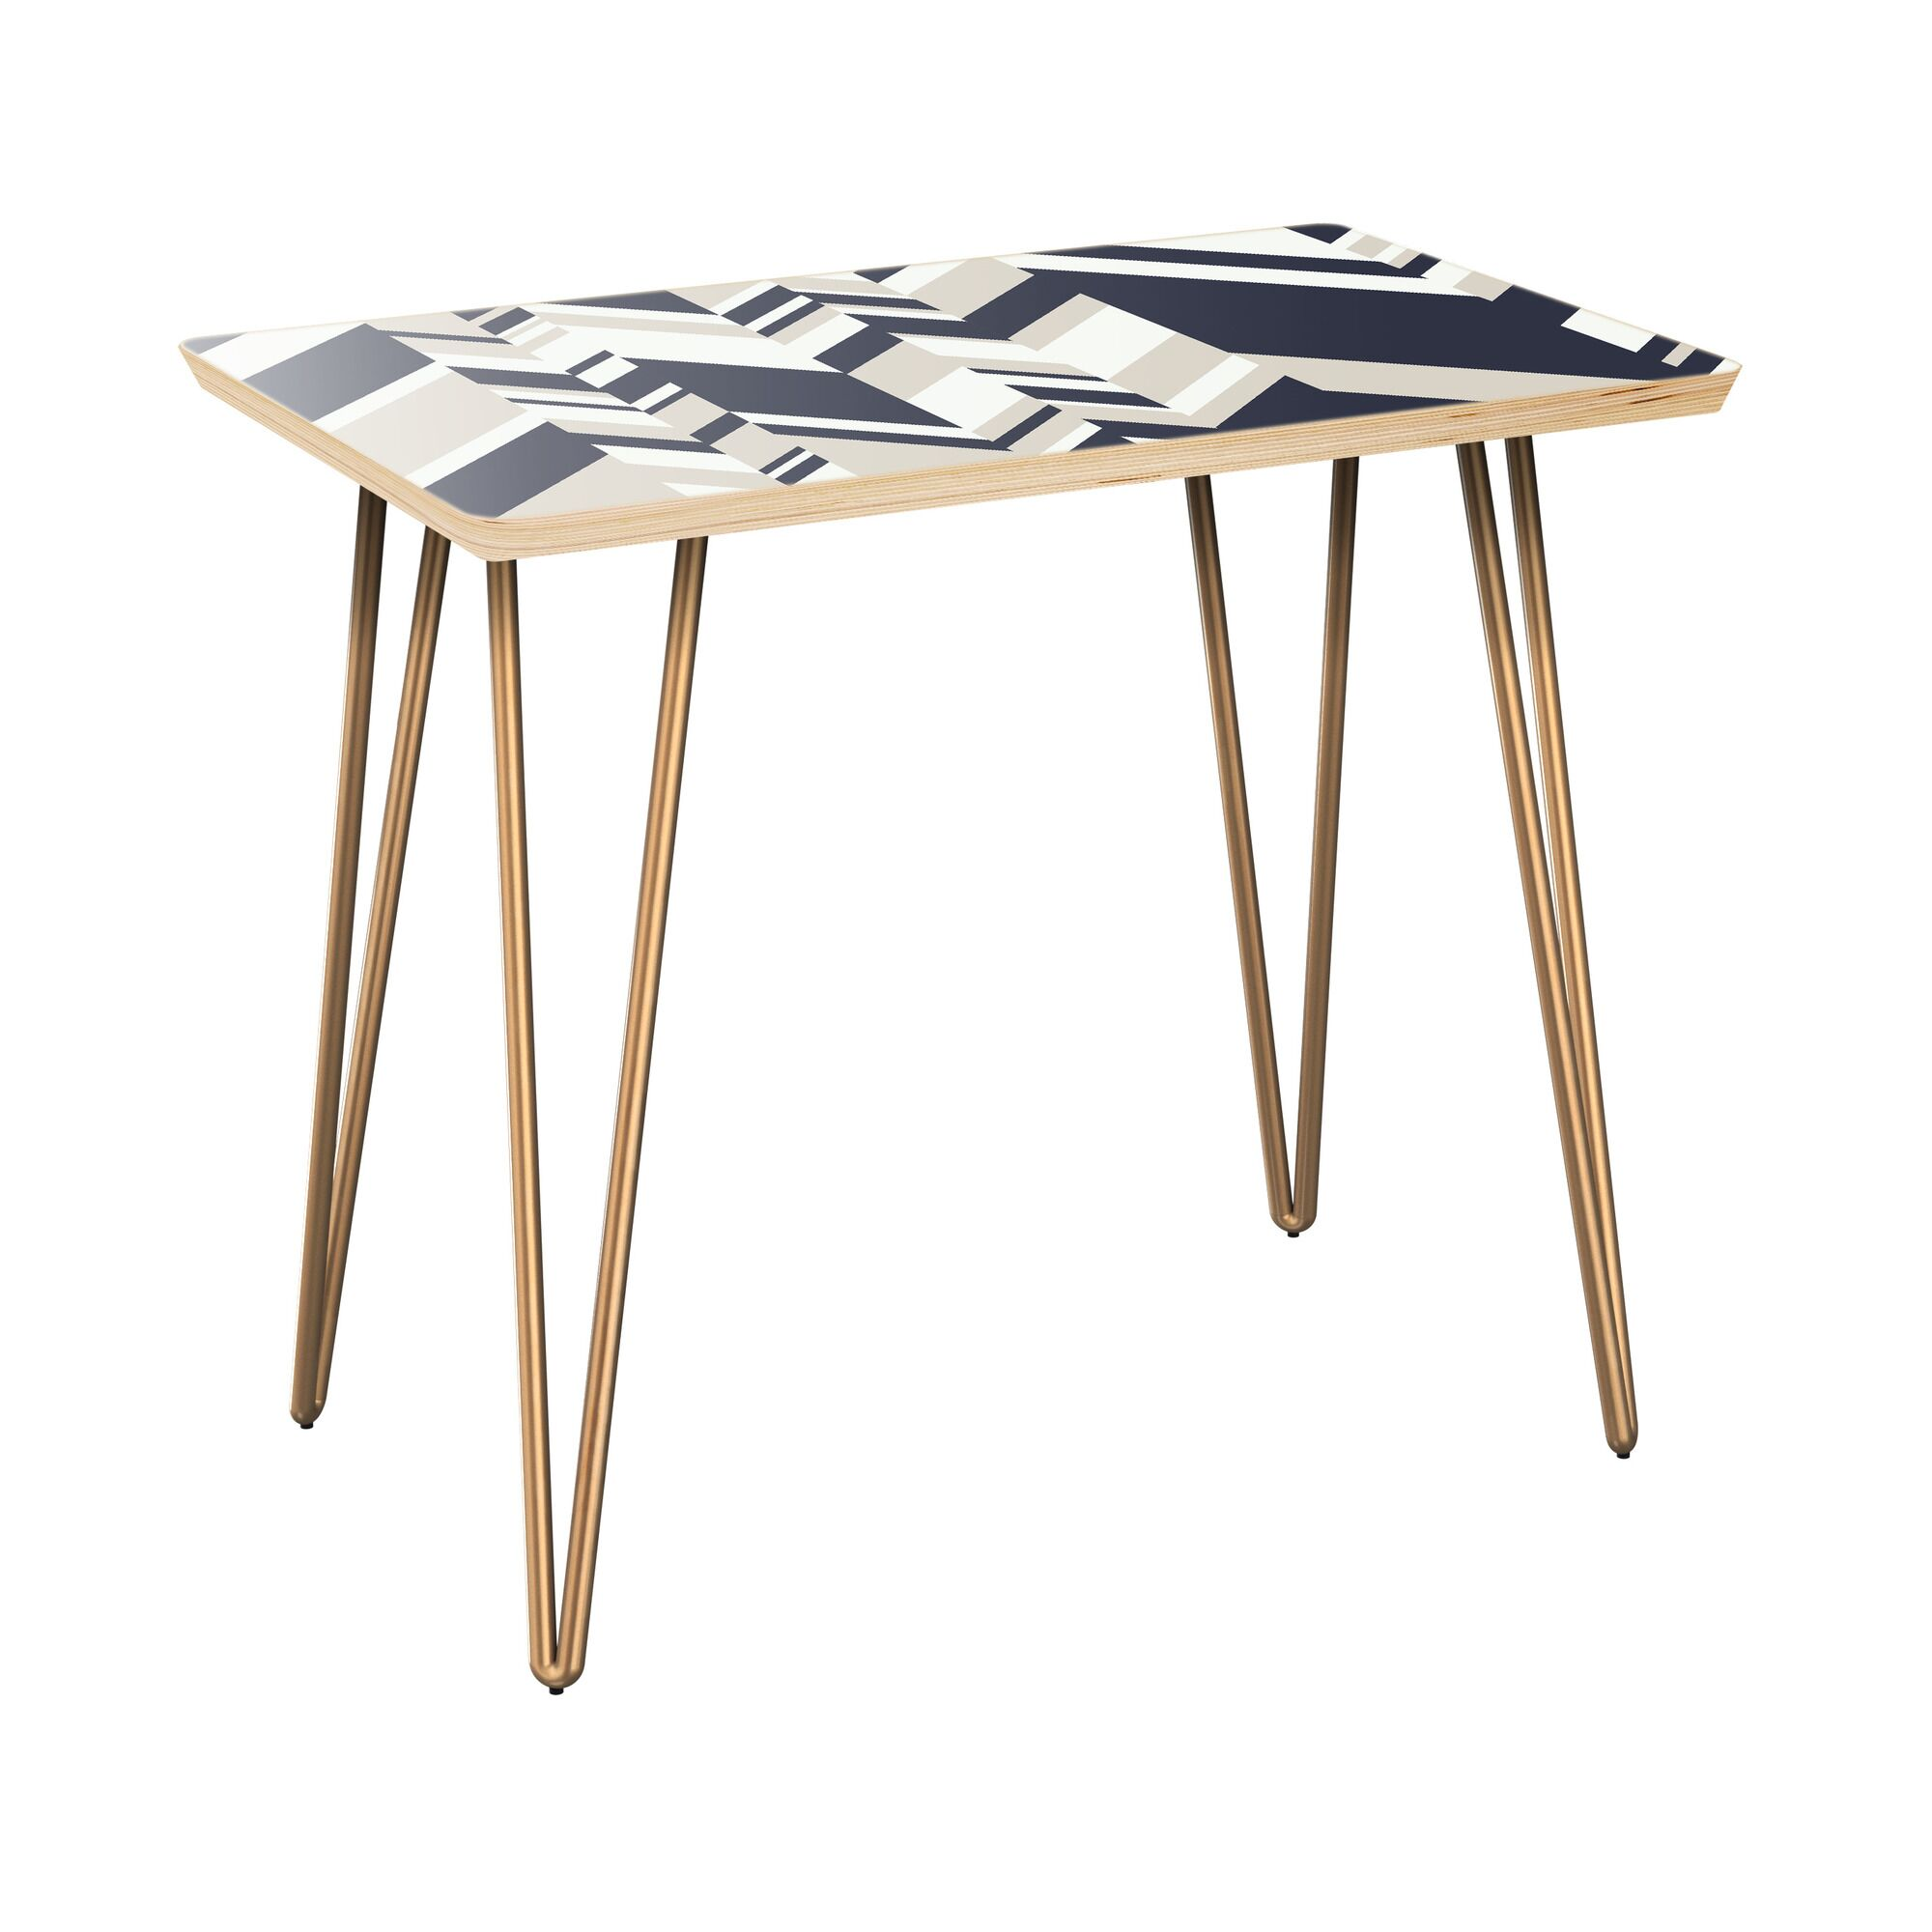 Howes End Table Table Top Color: Natural, Table Base Color: Brass